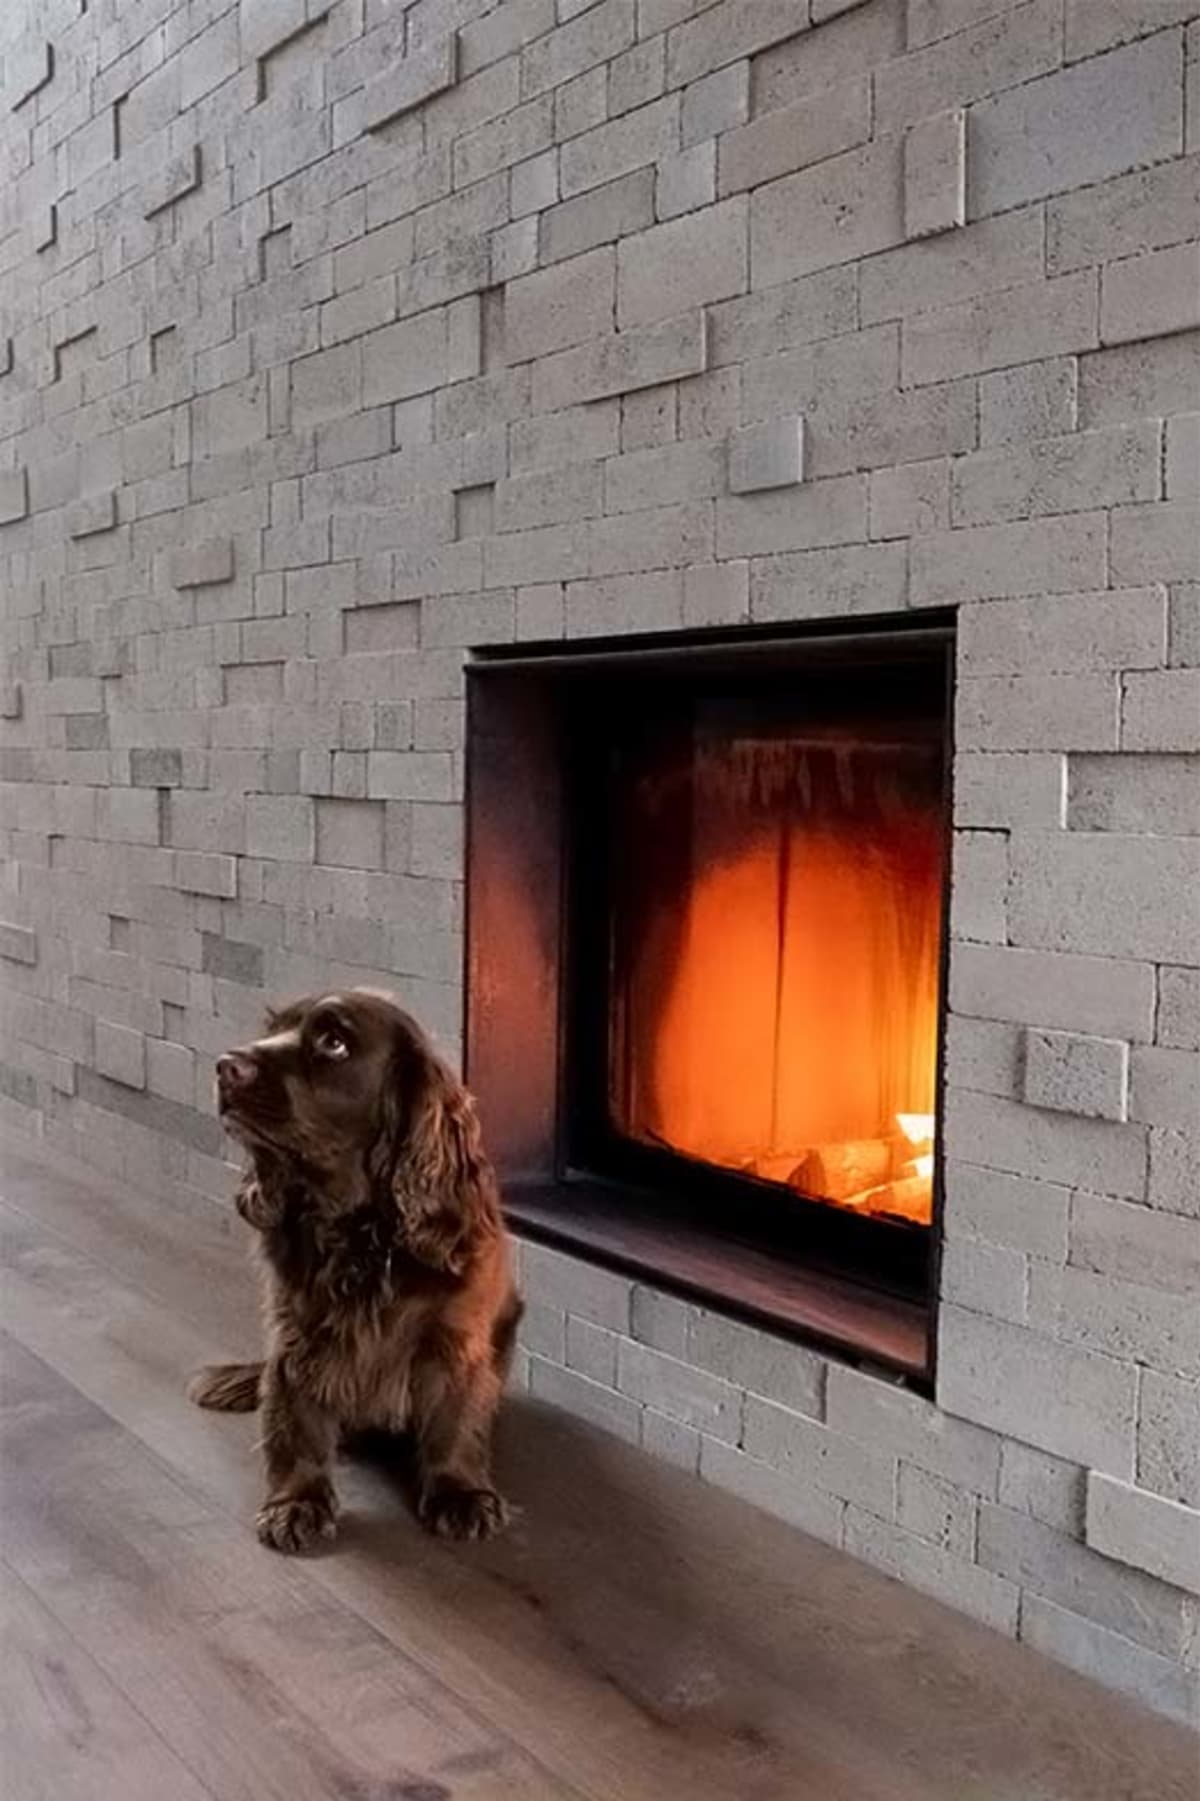 Internal brick wall with fireplace and dog